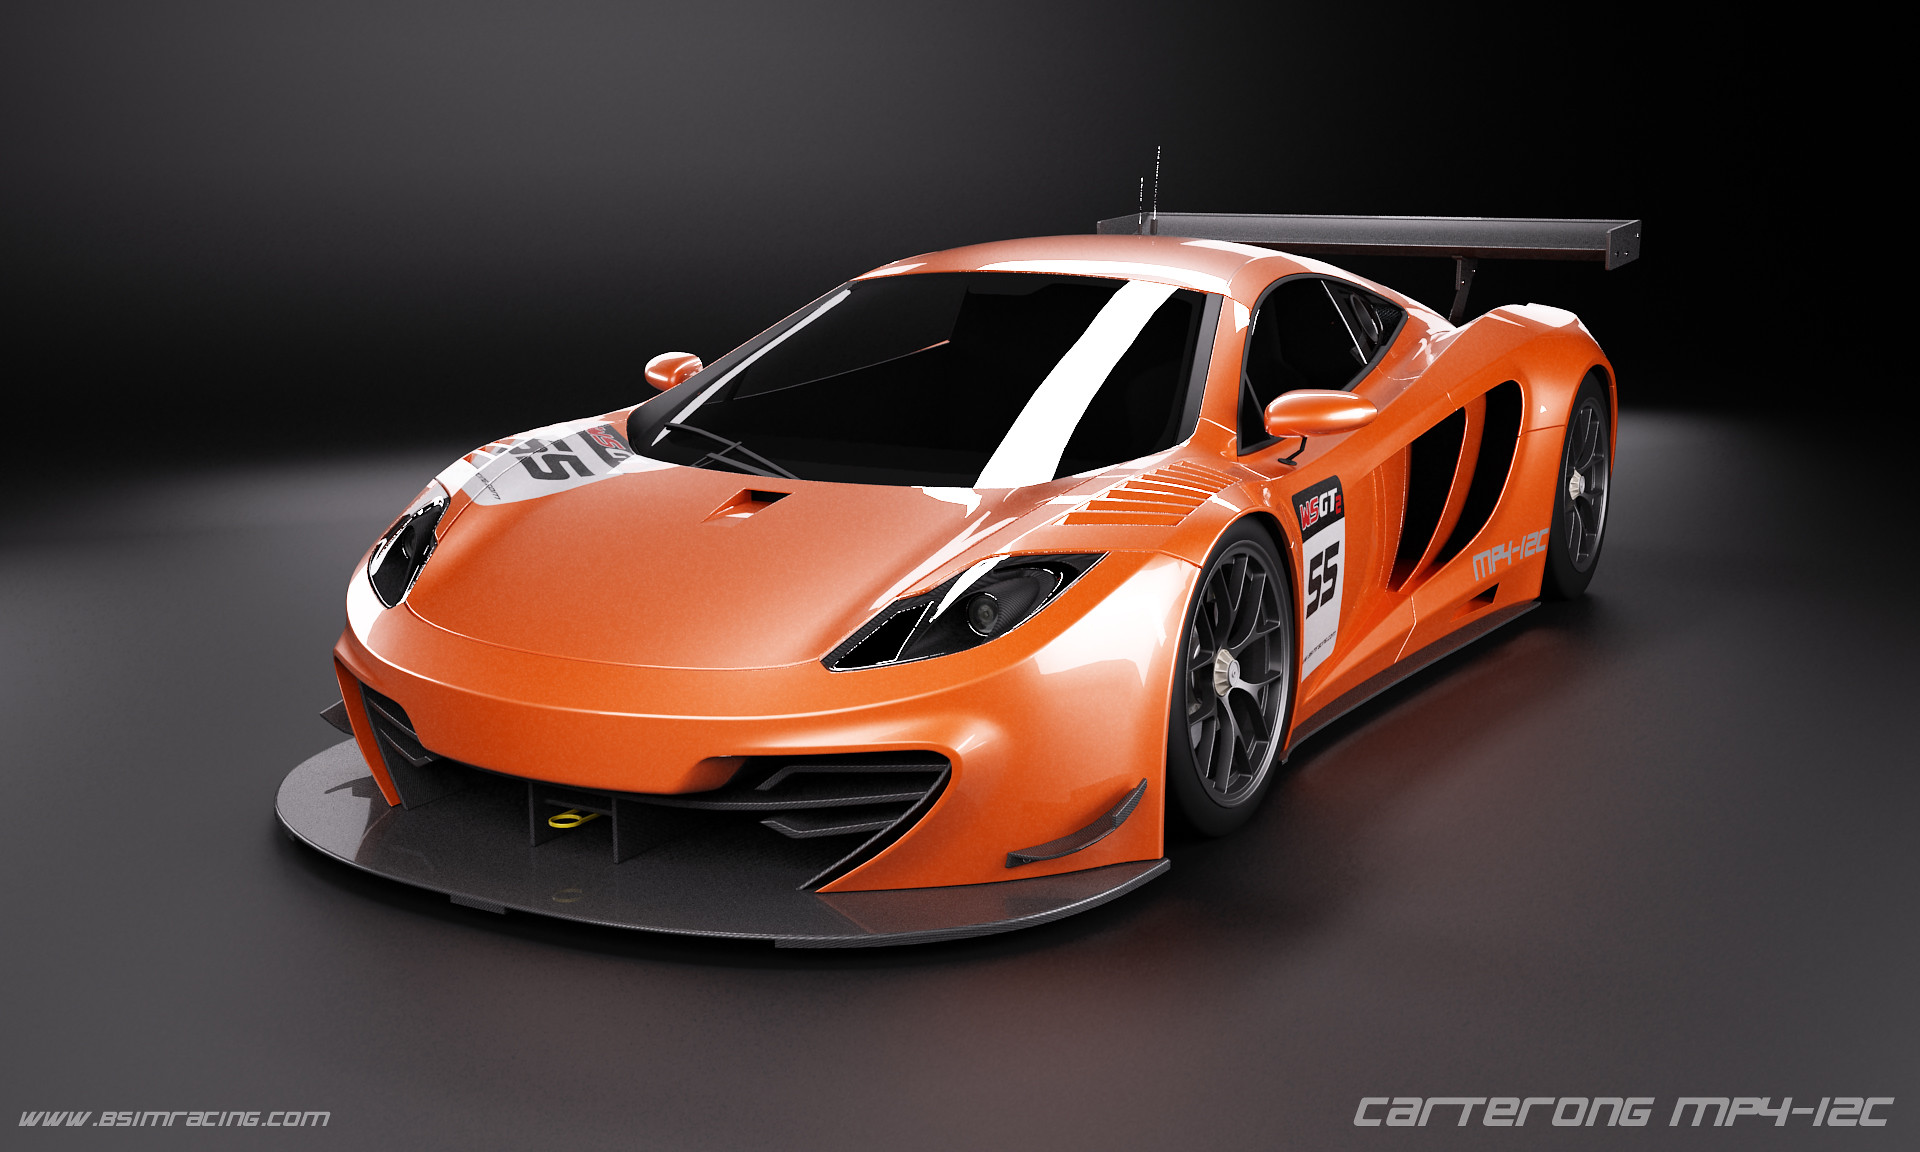 mp4-12c_final_studio_1i4xq (1)